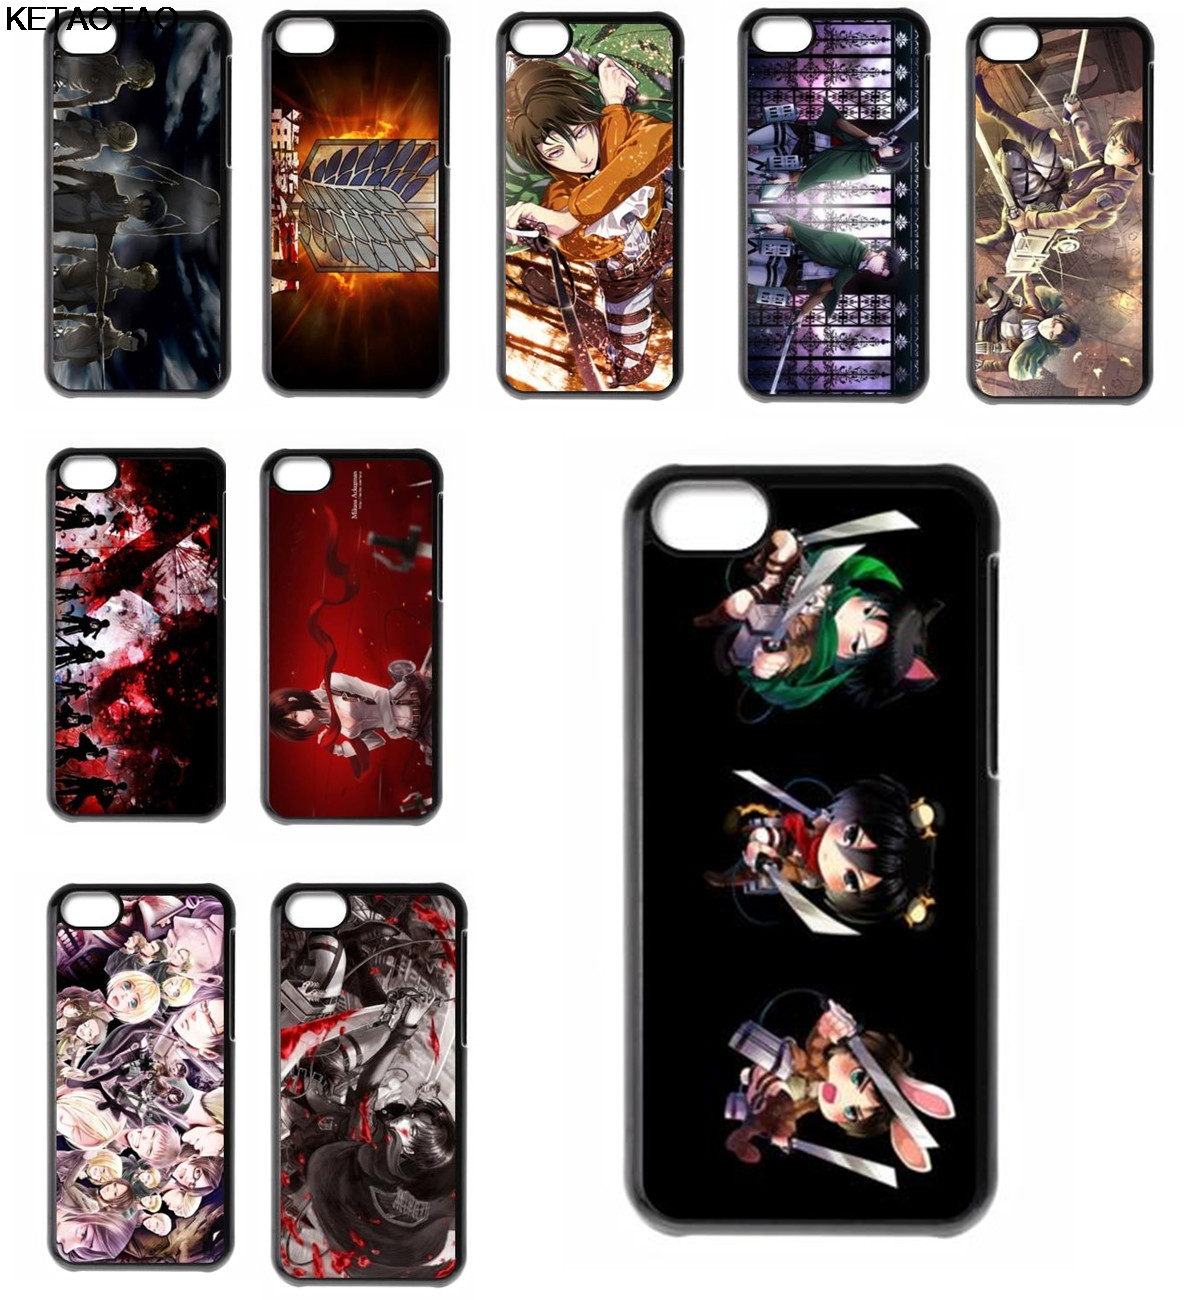 KETAOTAO Attack on Titan Shingeki no Kyojin Phone Cases for Samsung S3 4 5 6 7 8 9 NOTE 3 4 5 7 8 Case Soft TPU Rubber Silicone